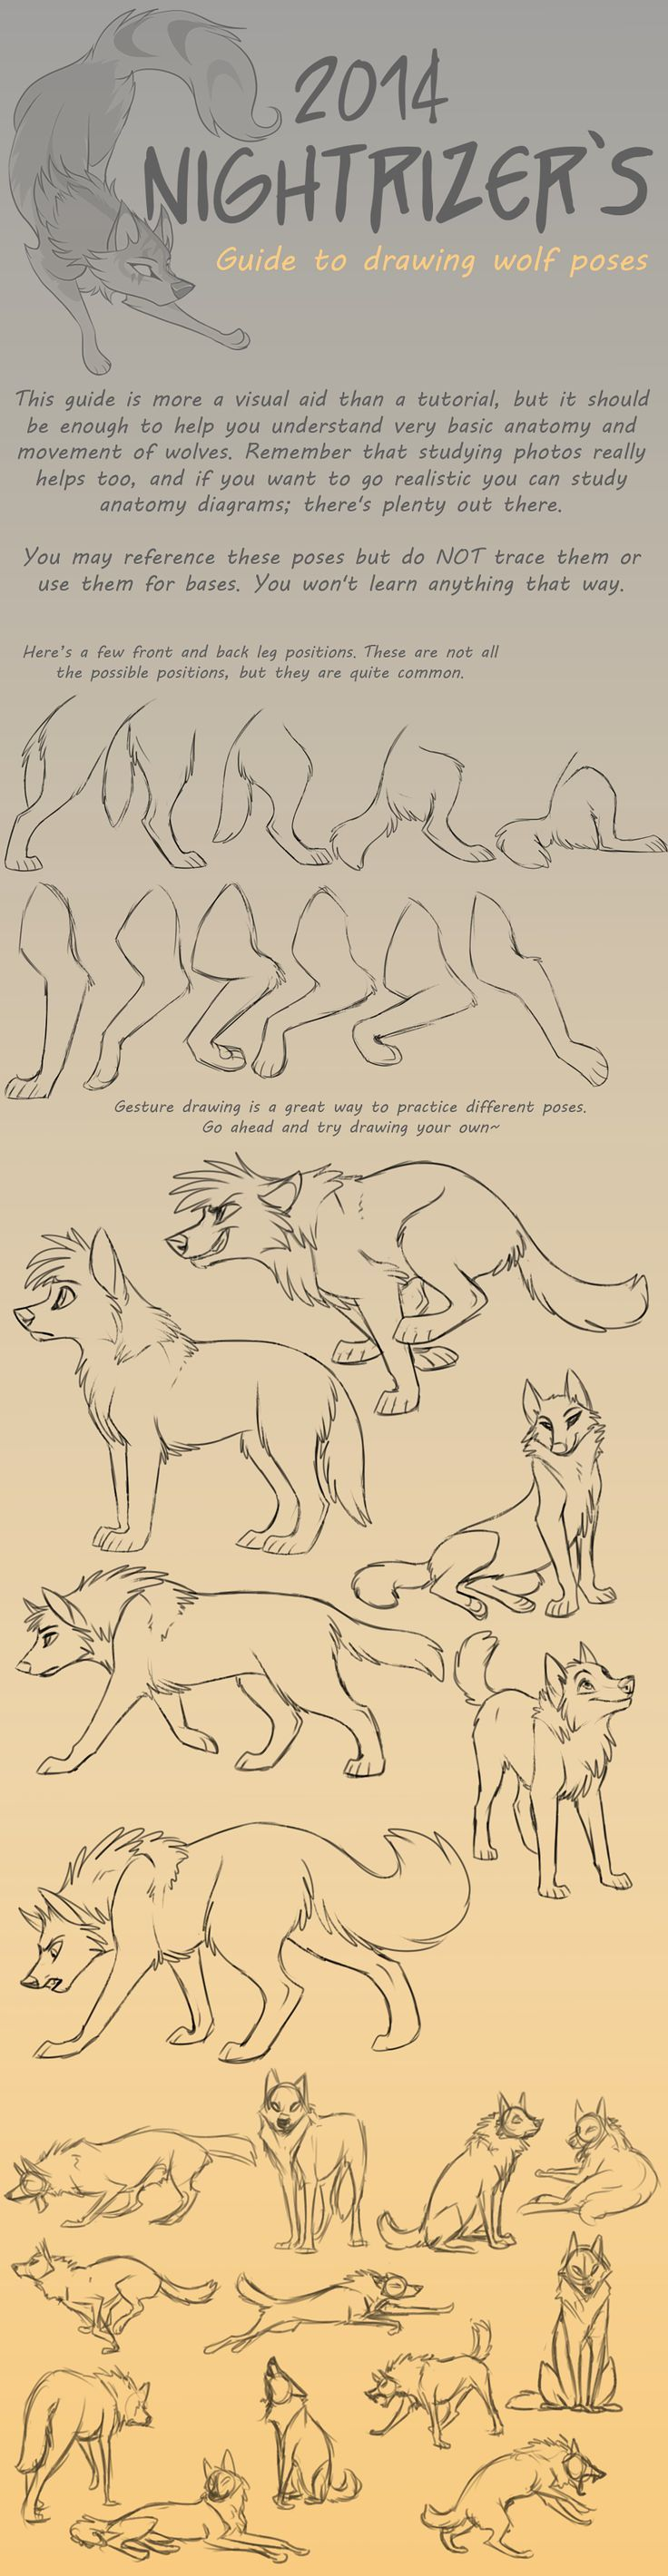 Guide to Drawing Wolf Poses by Nightrizer.deviantart.com on @deviantART: